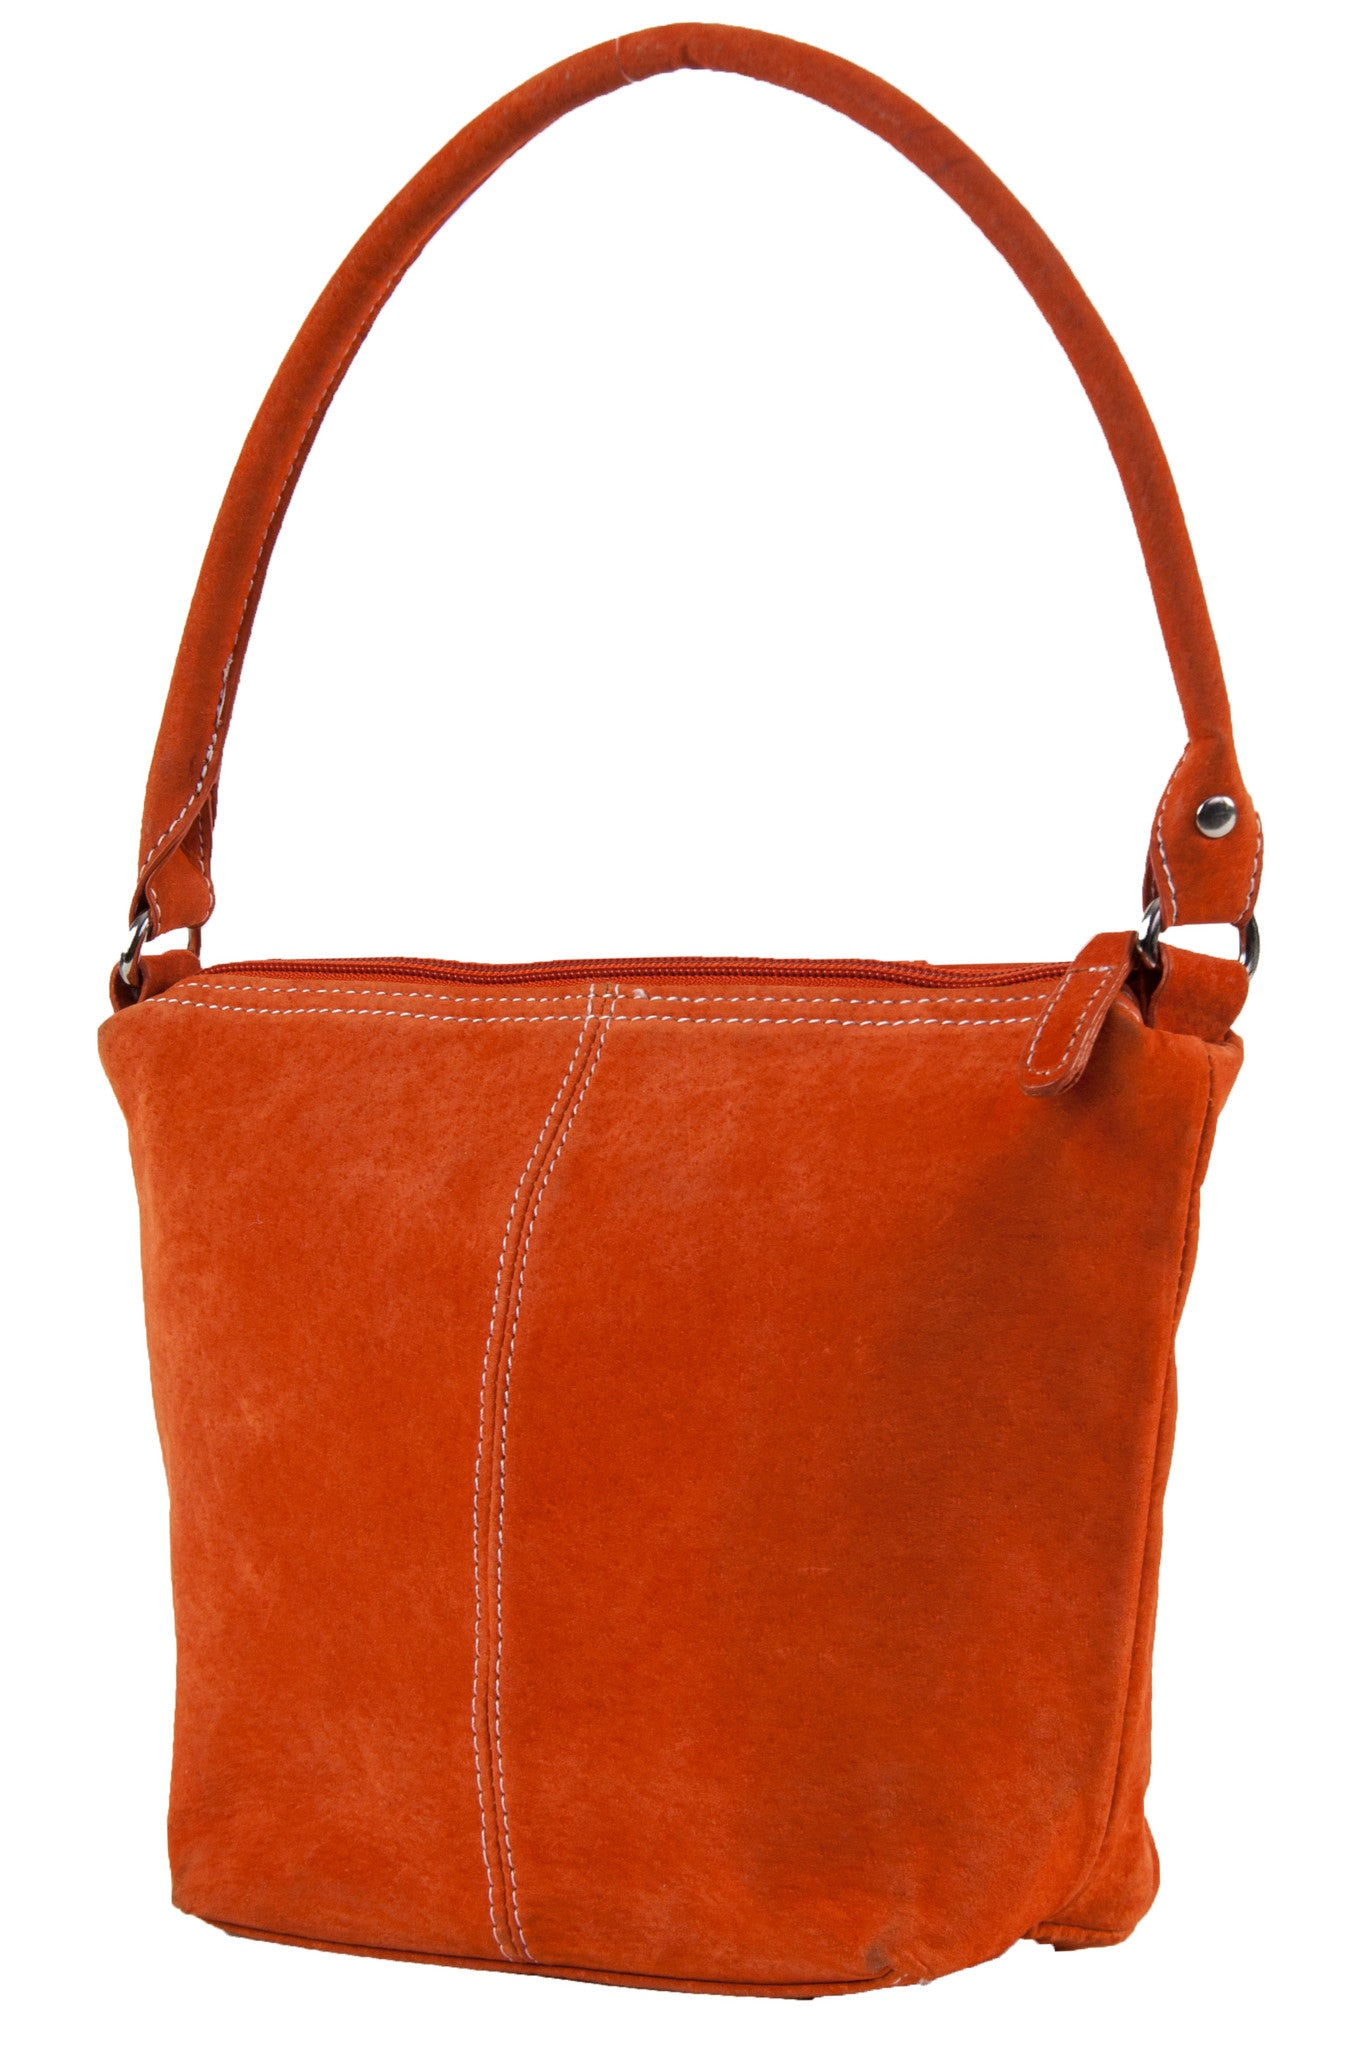 vintage suede purse in neon orange